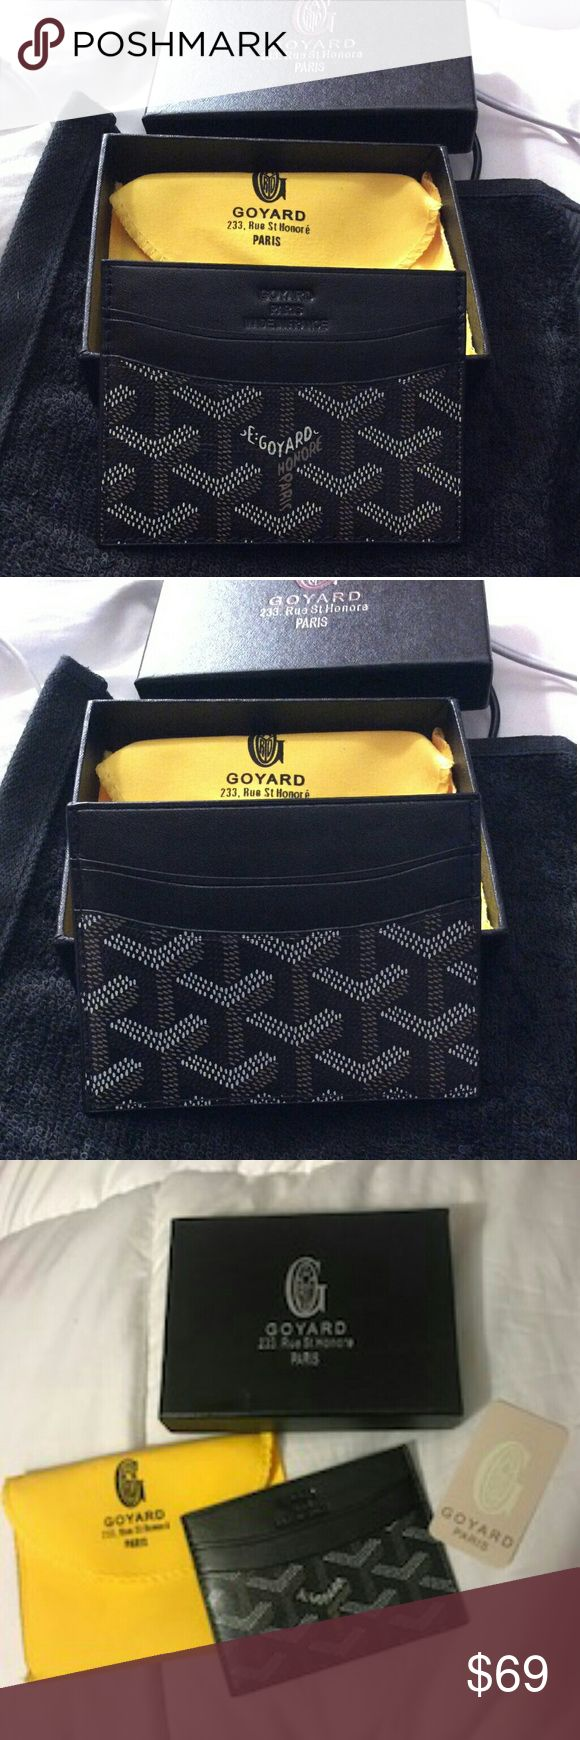 Black Goyard Card holder New with box hence price not the original Accessories Key & Card Holders